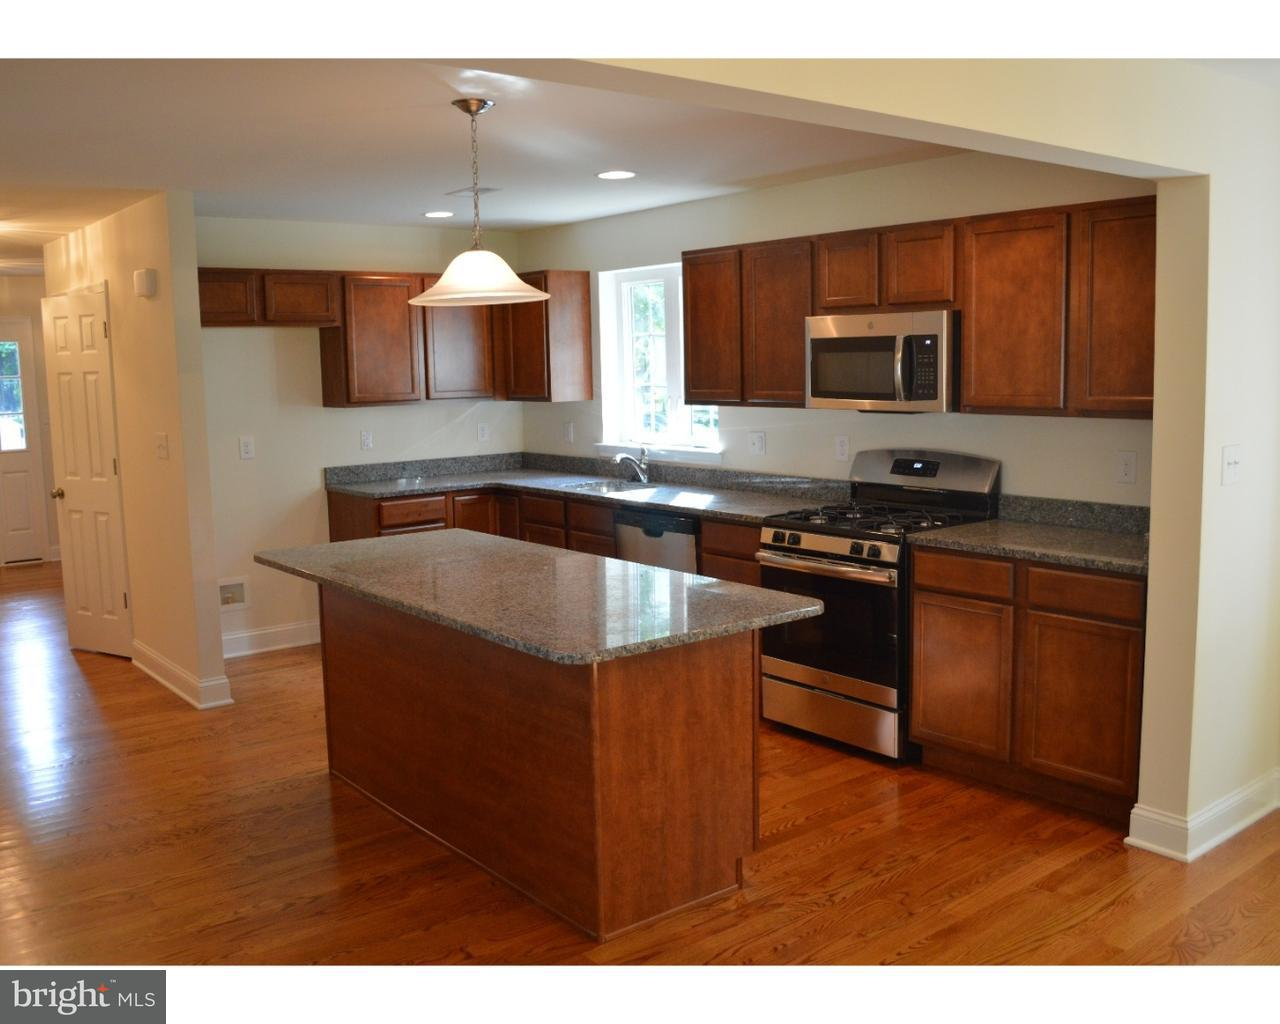 337A UNION AVE, SWARTHMORE - Listed at $474,900, SWARTHMORE